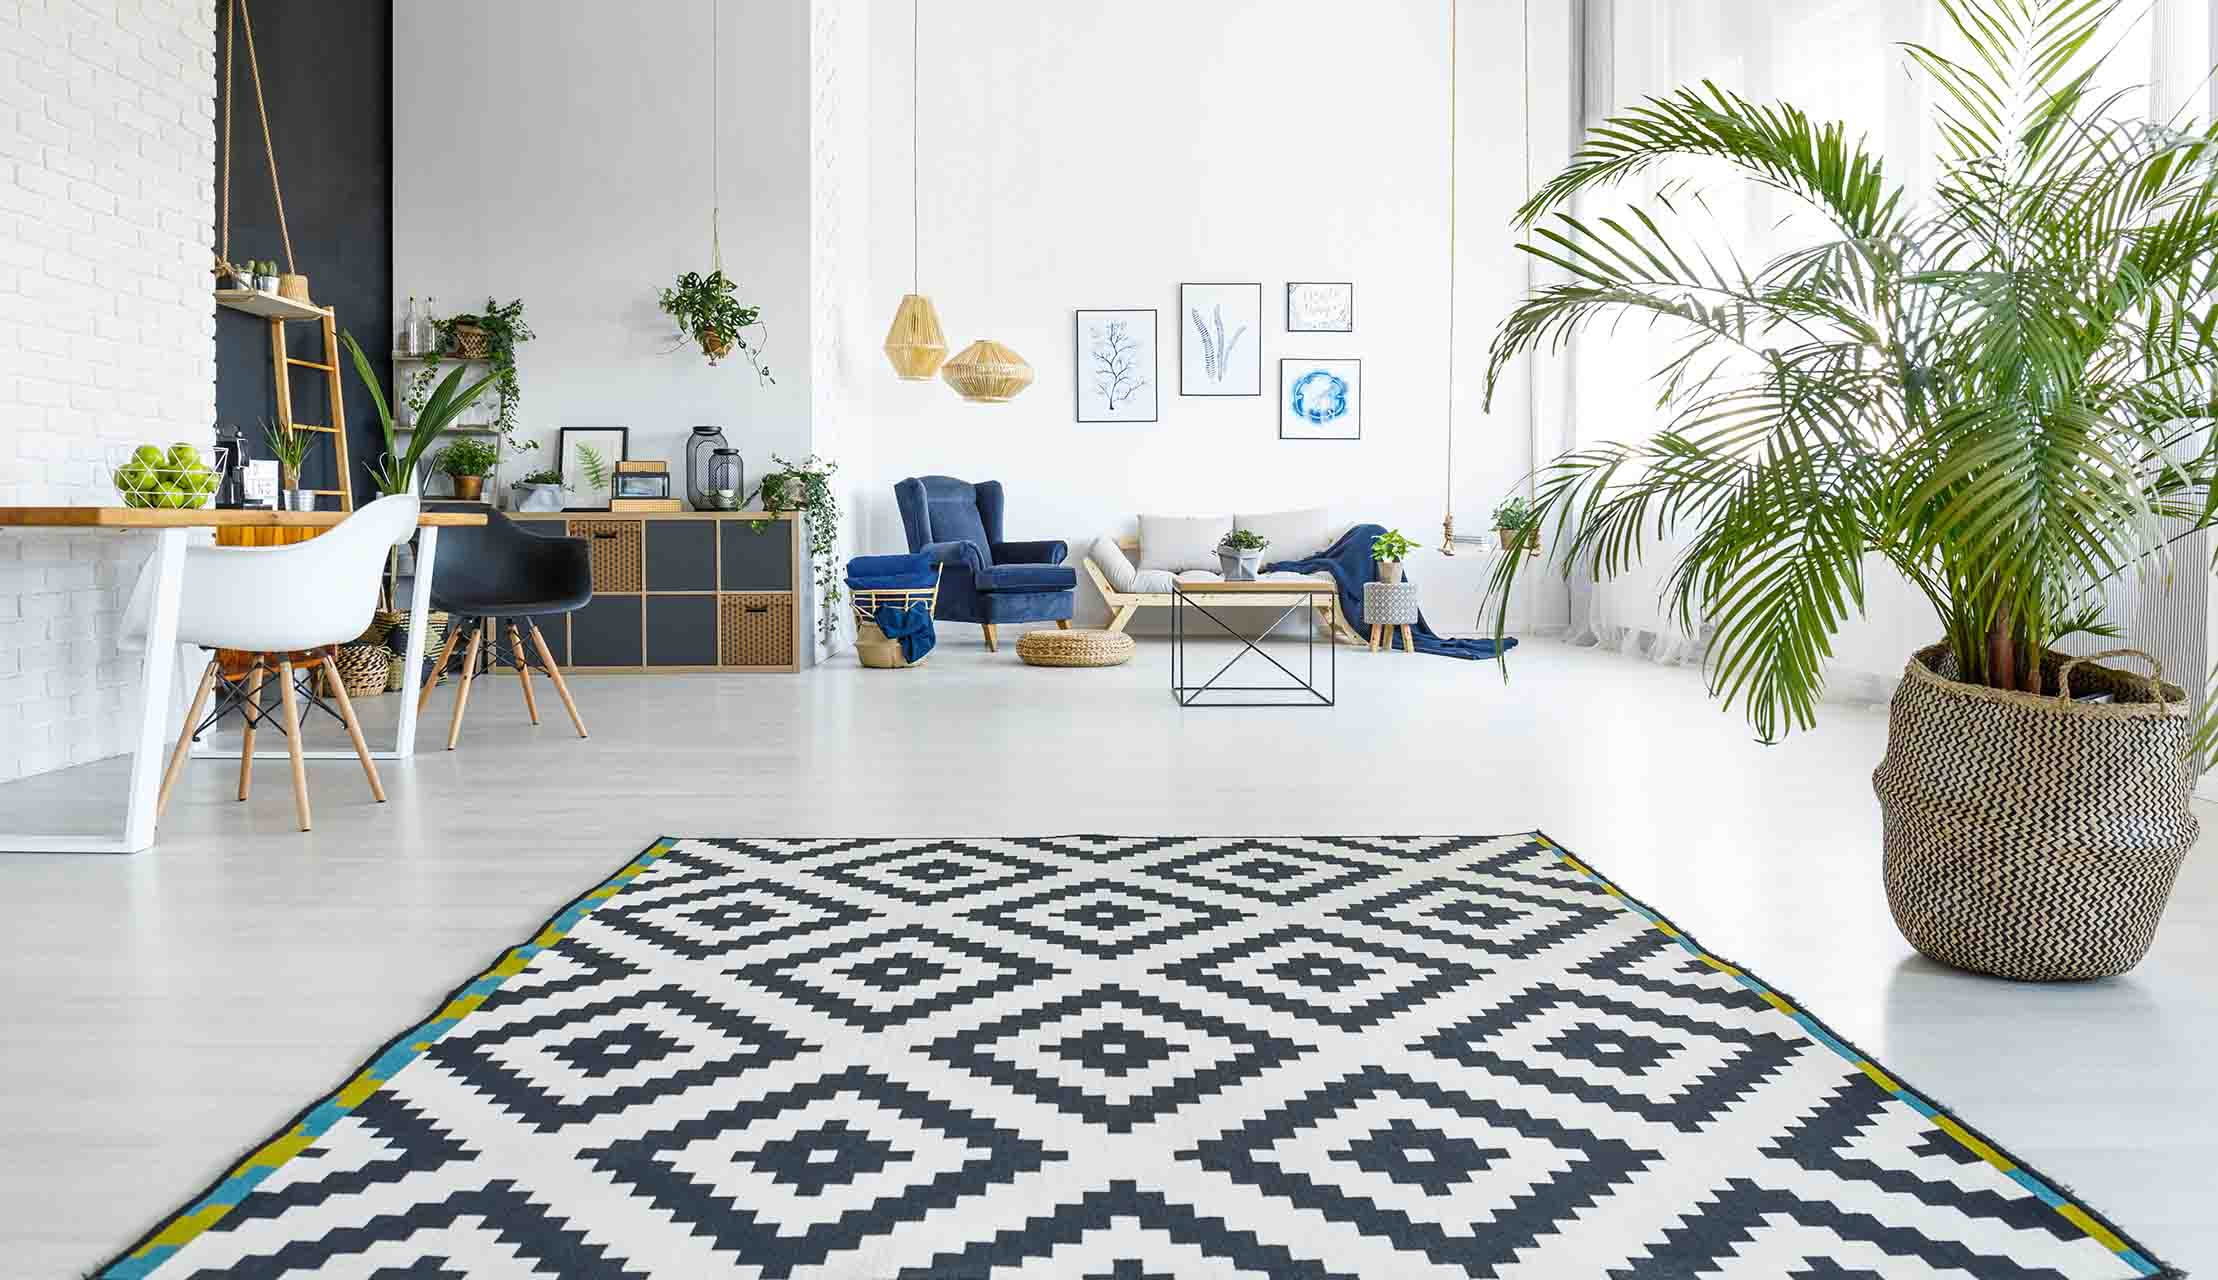 Is it better to have carpet or hardwood floors?